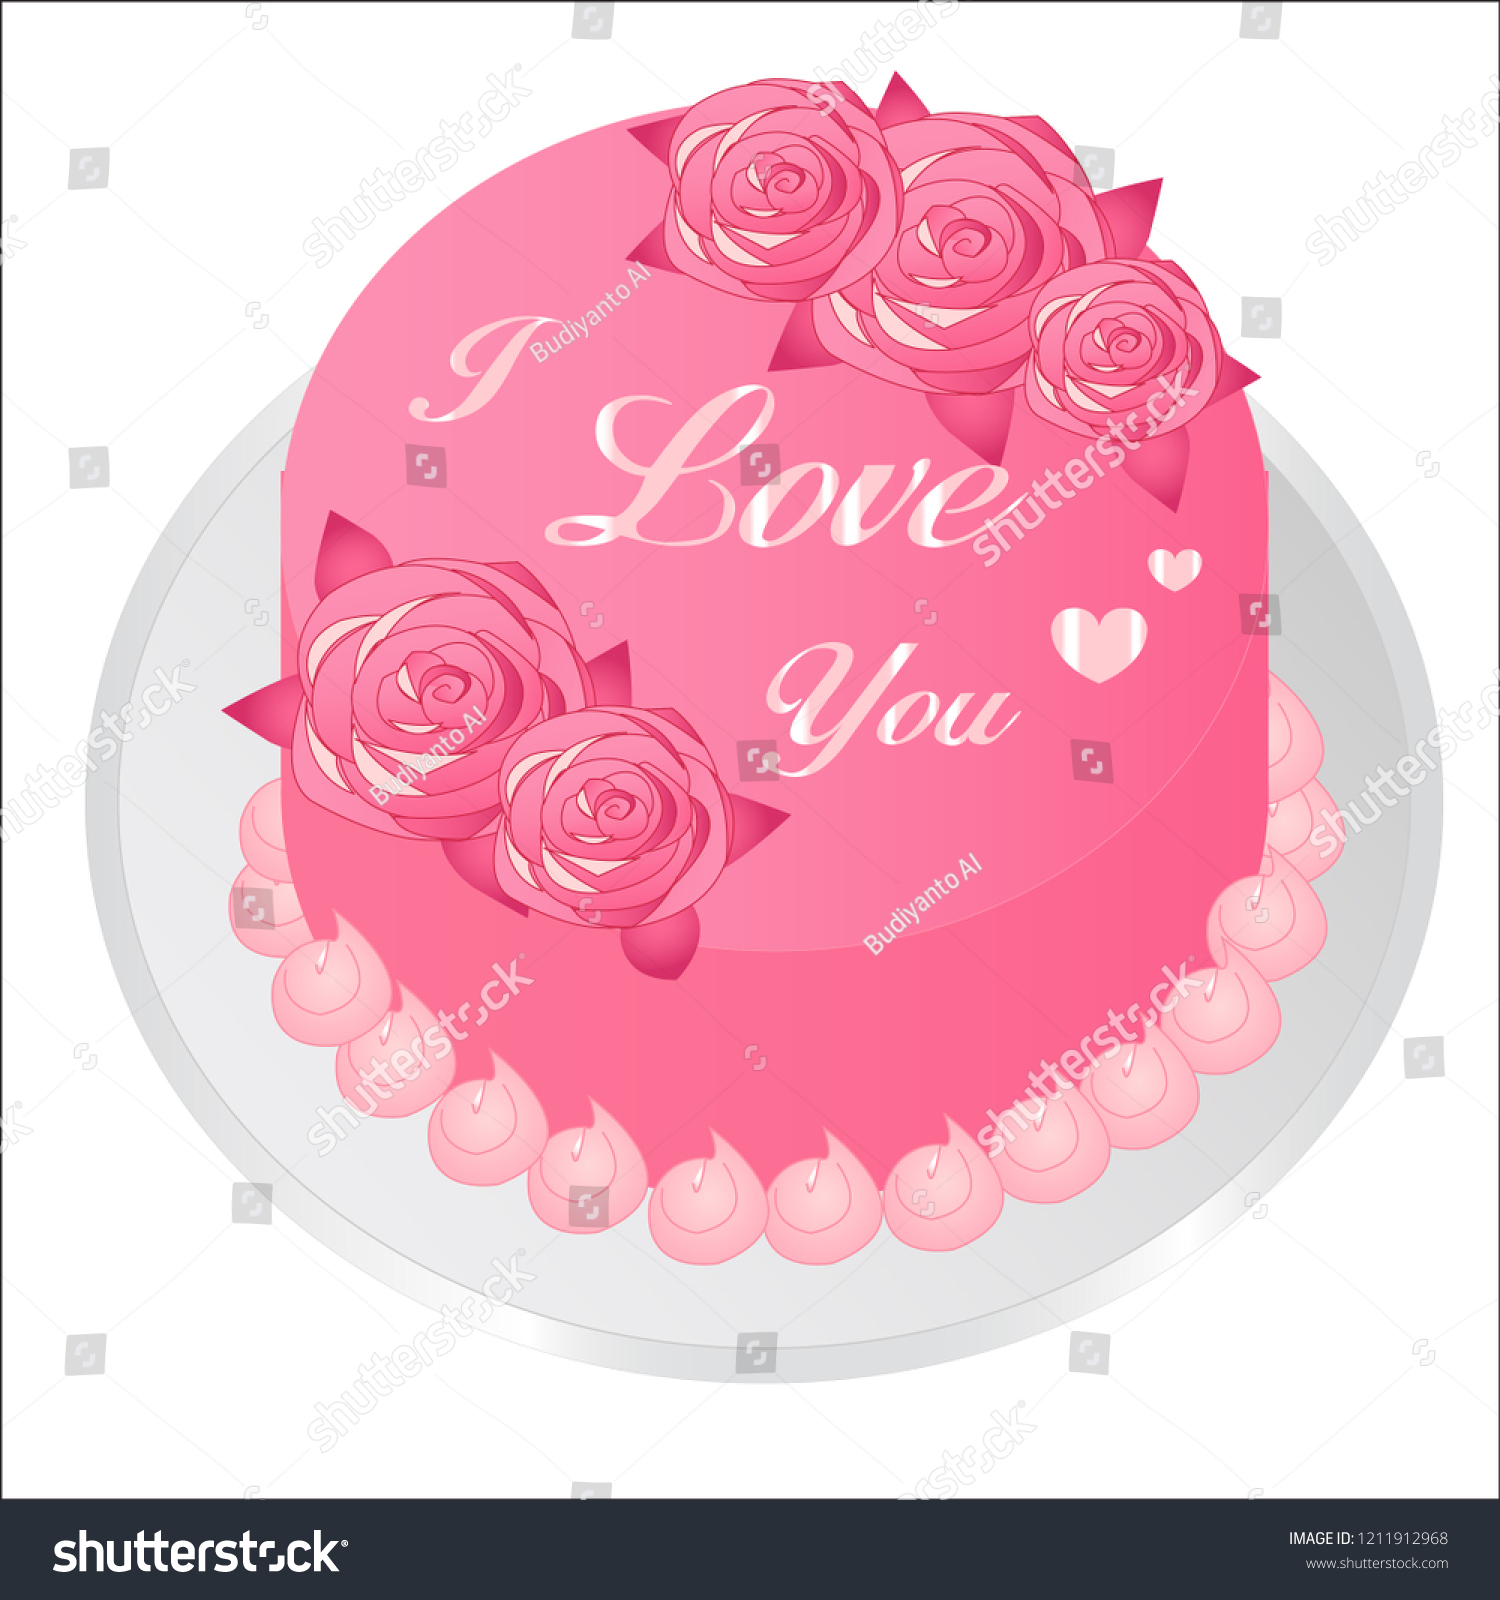 Icon Birthday Cake With Heart Shape For Background Design Banner And Various Other